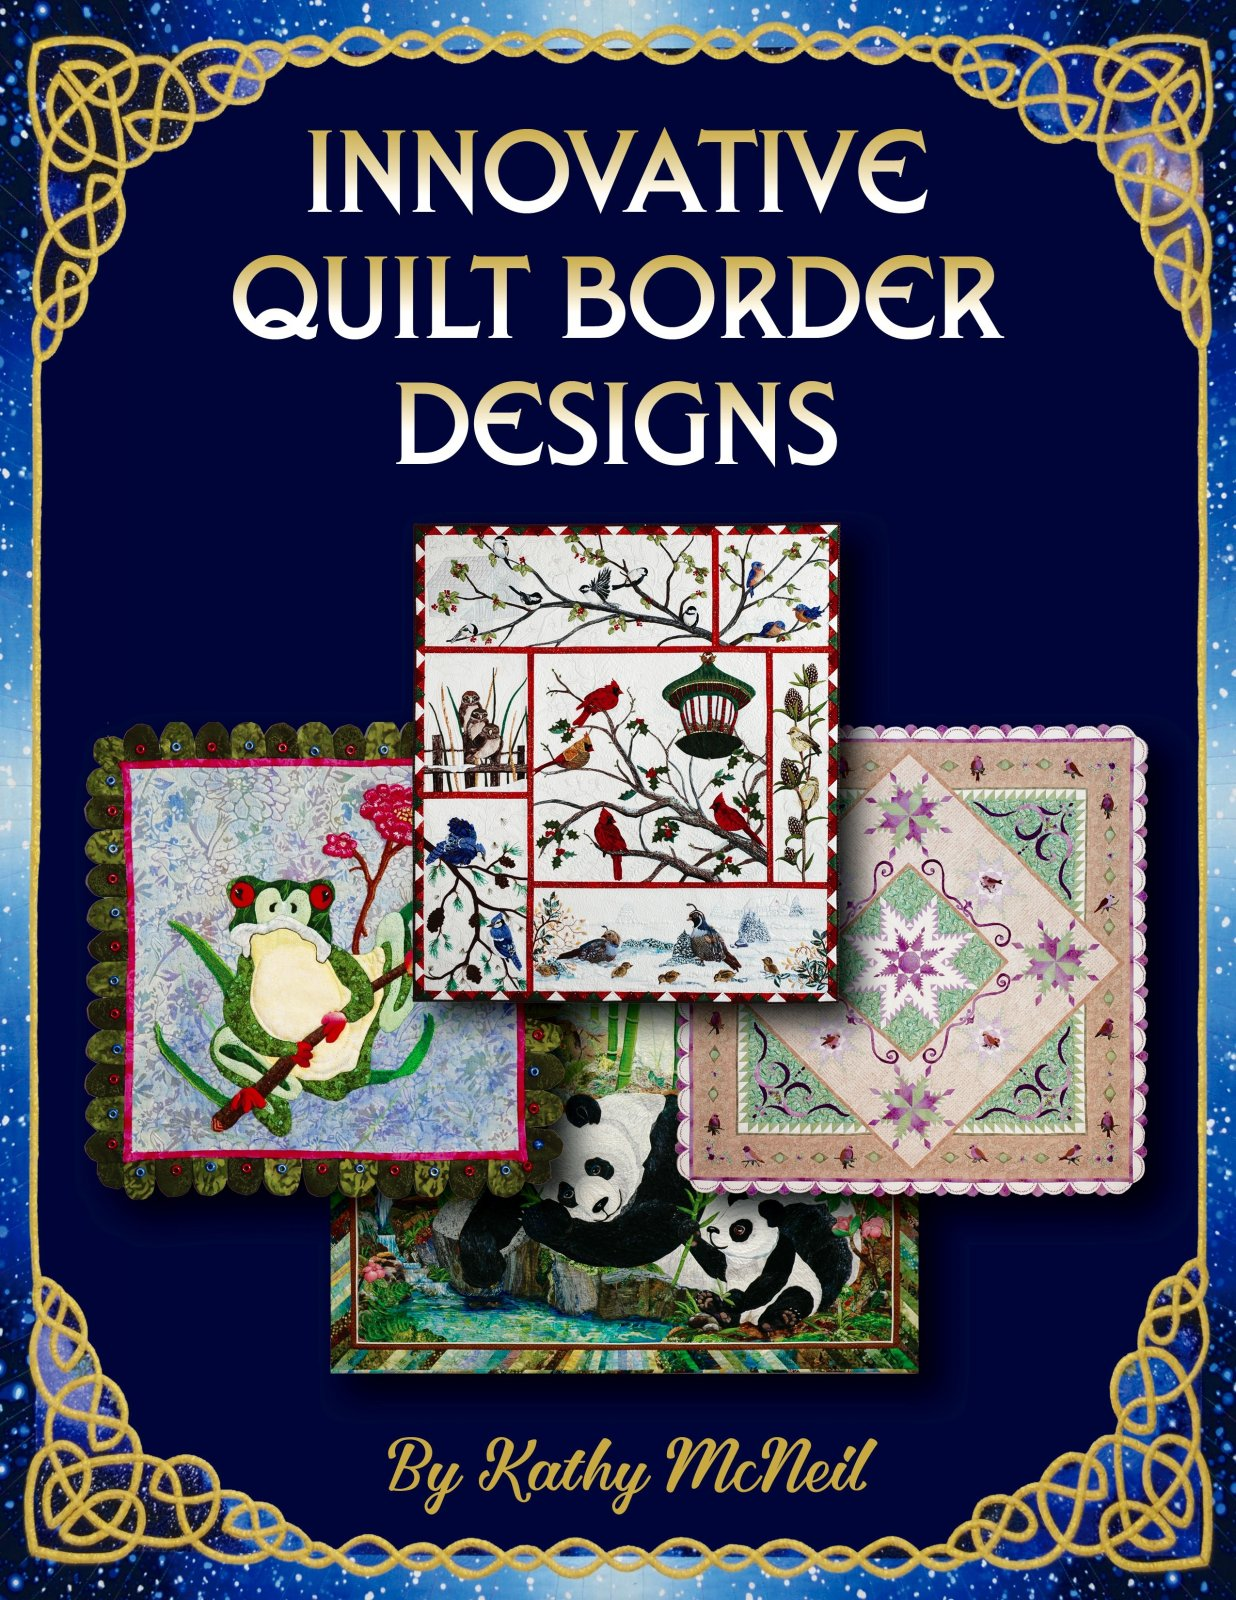 Innovative Quilt Borders book